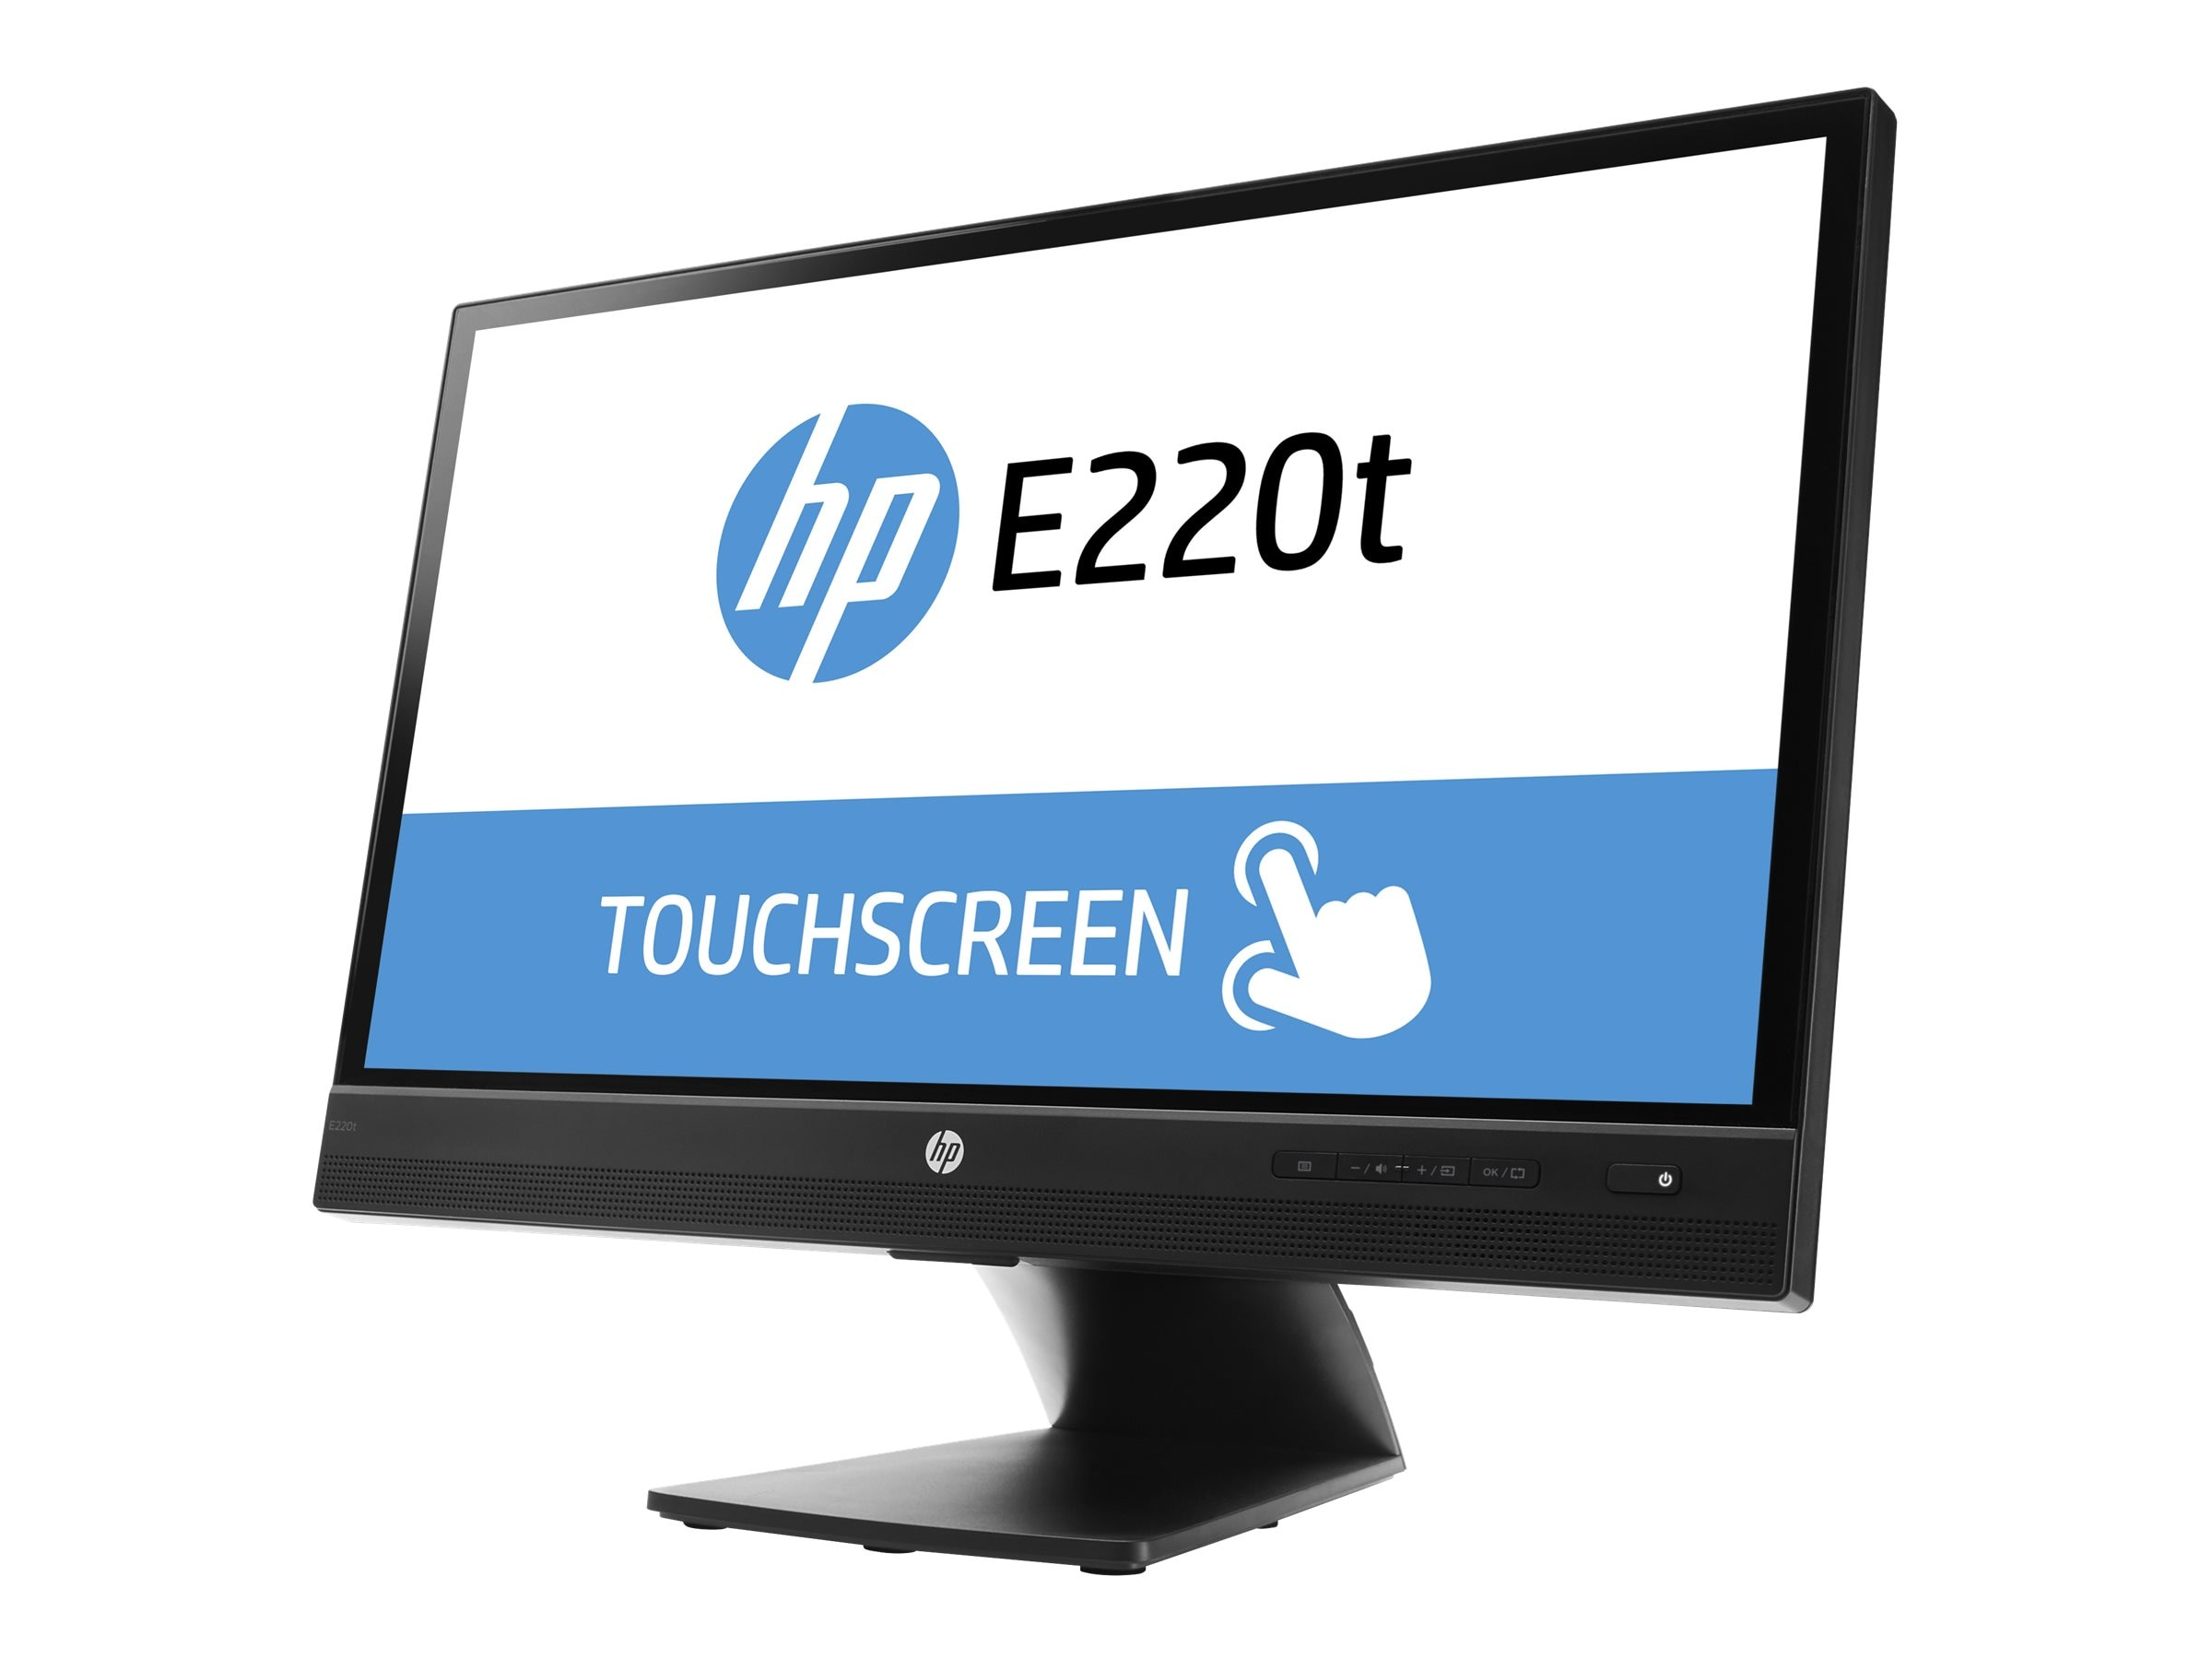 HP Promo 21.5 E220T Full HD LED-LCD Touchscreen Monitor, Black, L4Q76A8#ABA